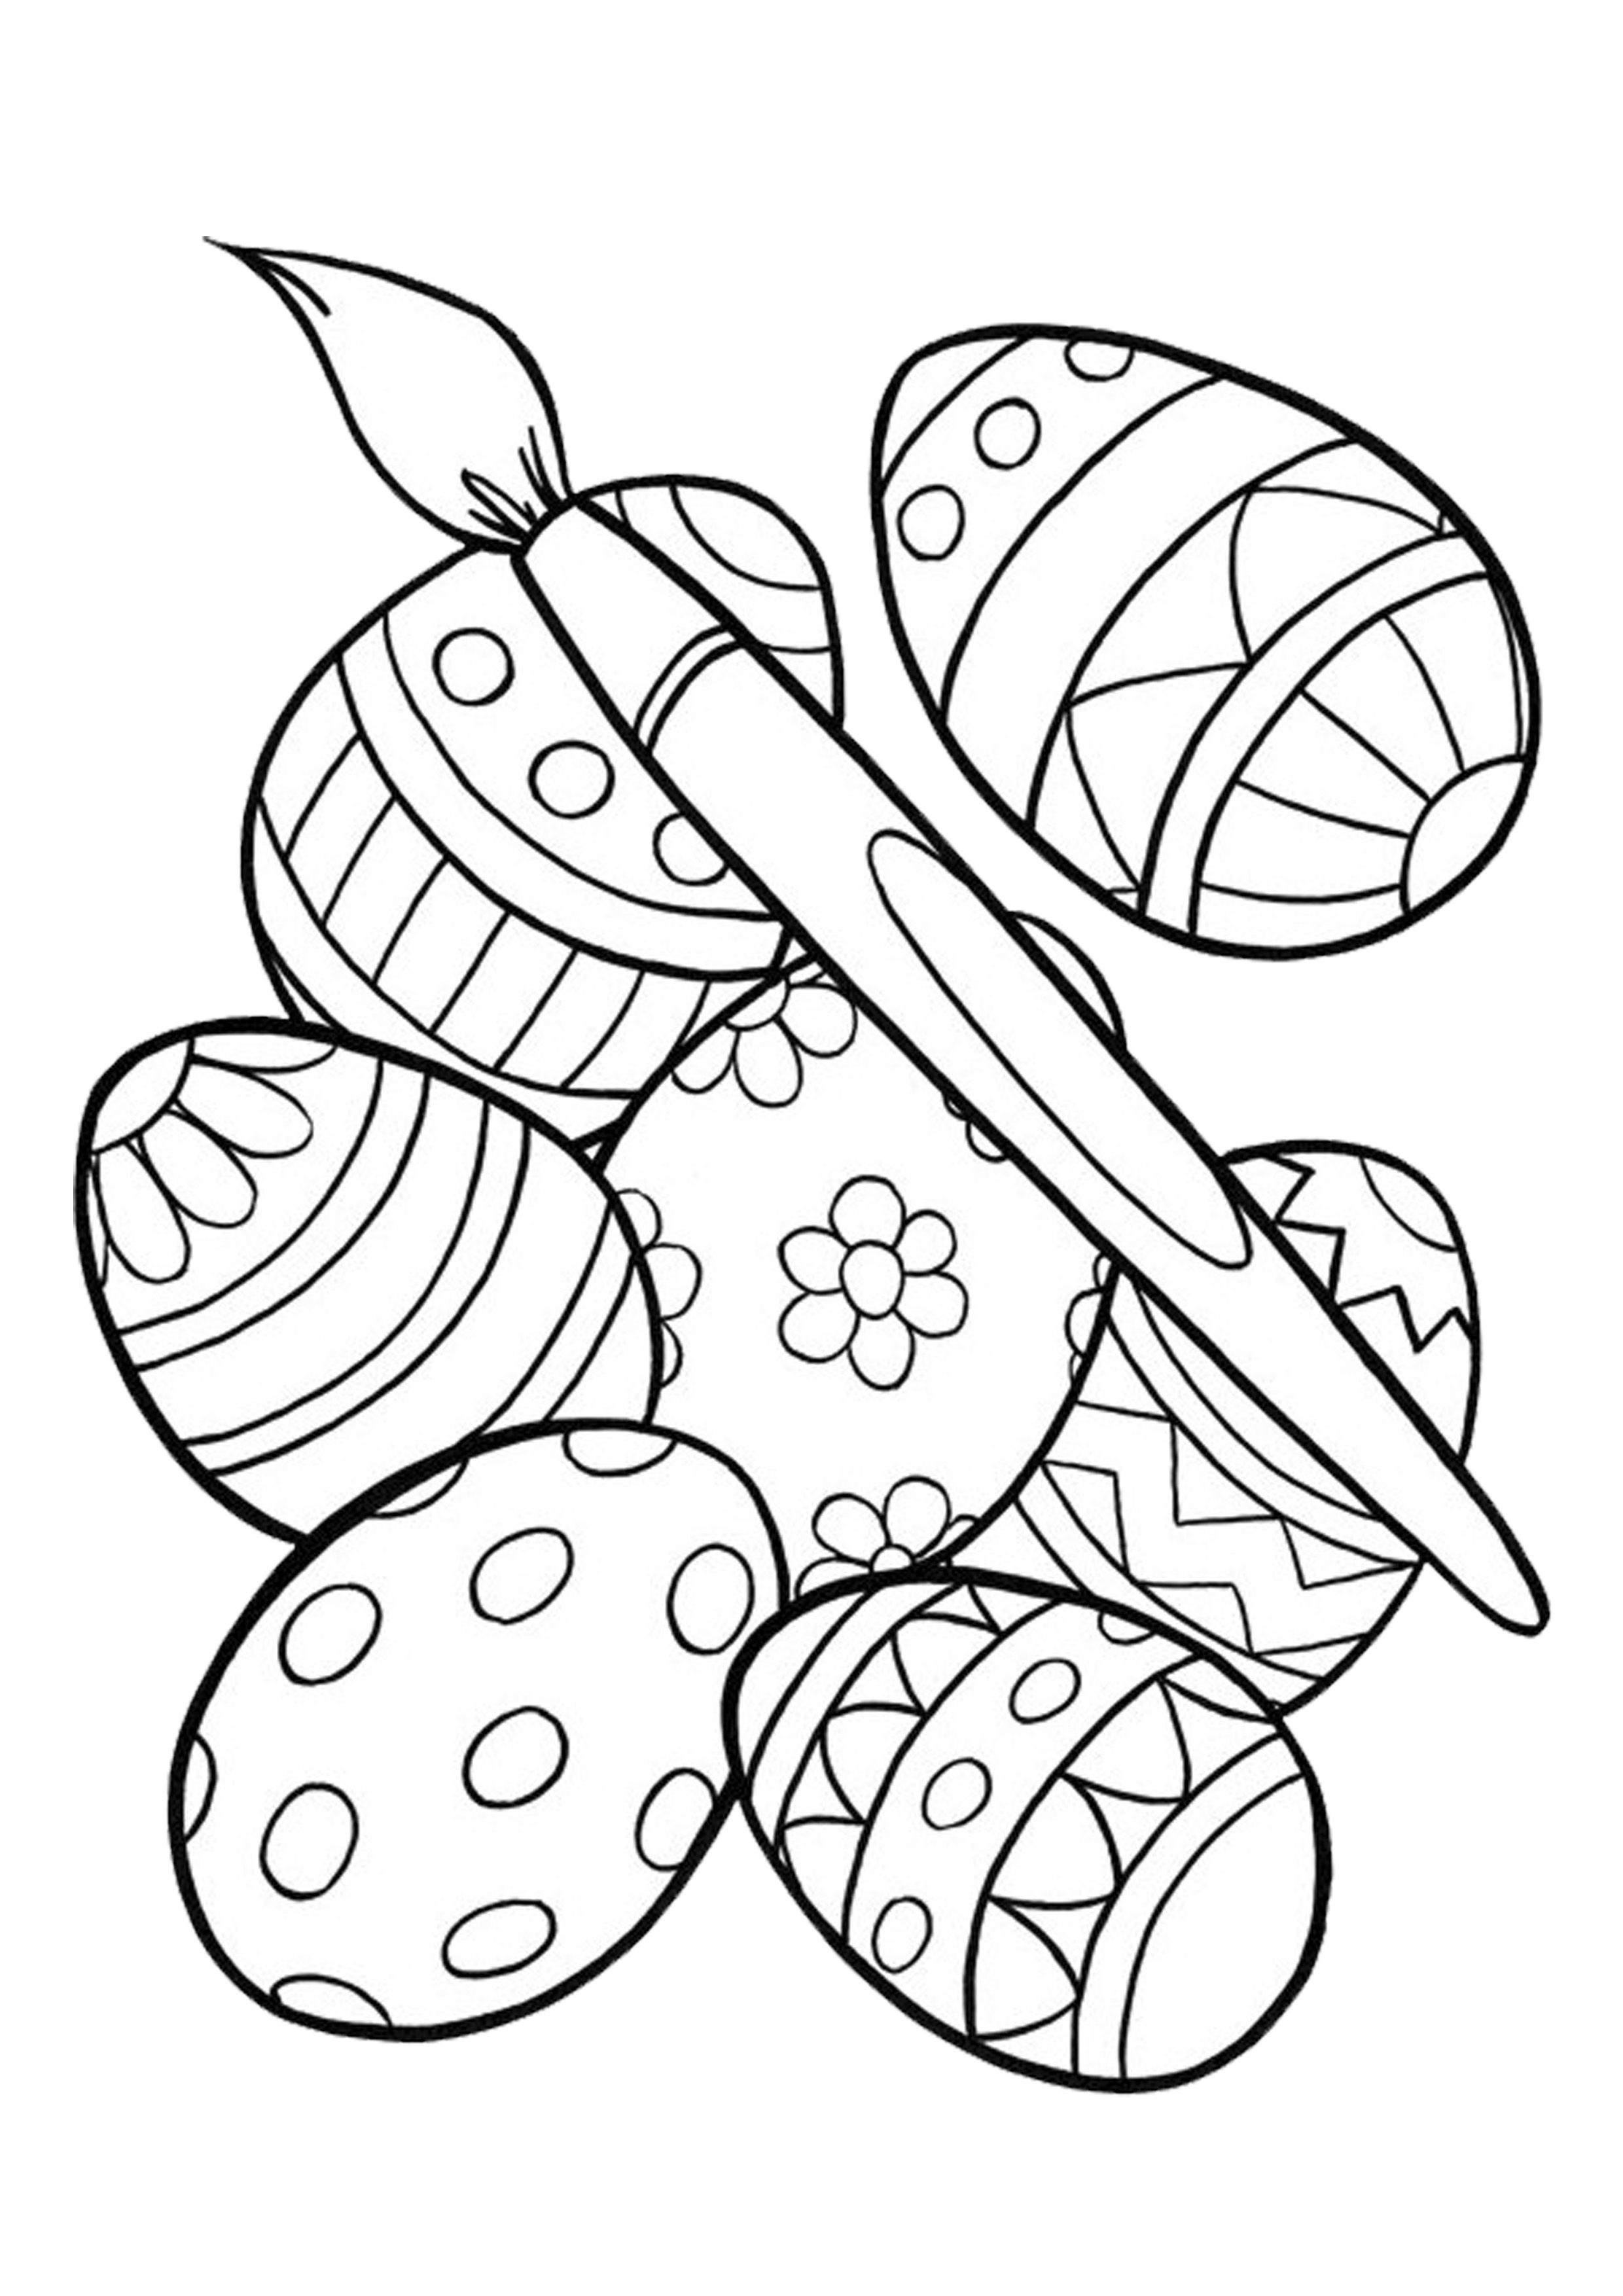 Easter | Free easter coloring pages, Easter egg coloring ... | free printable easter coloring pages for toddlers